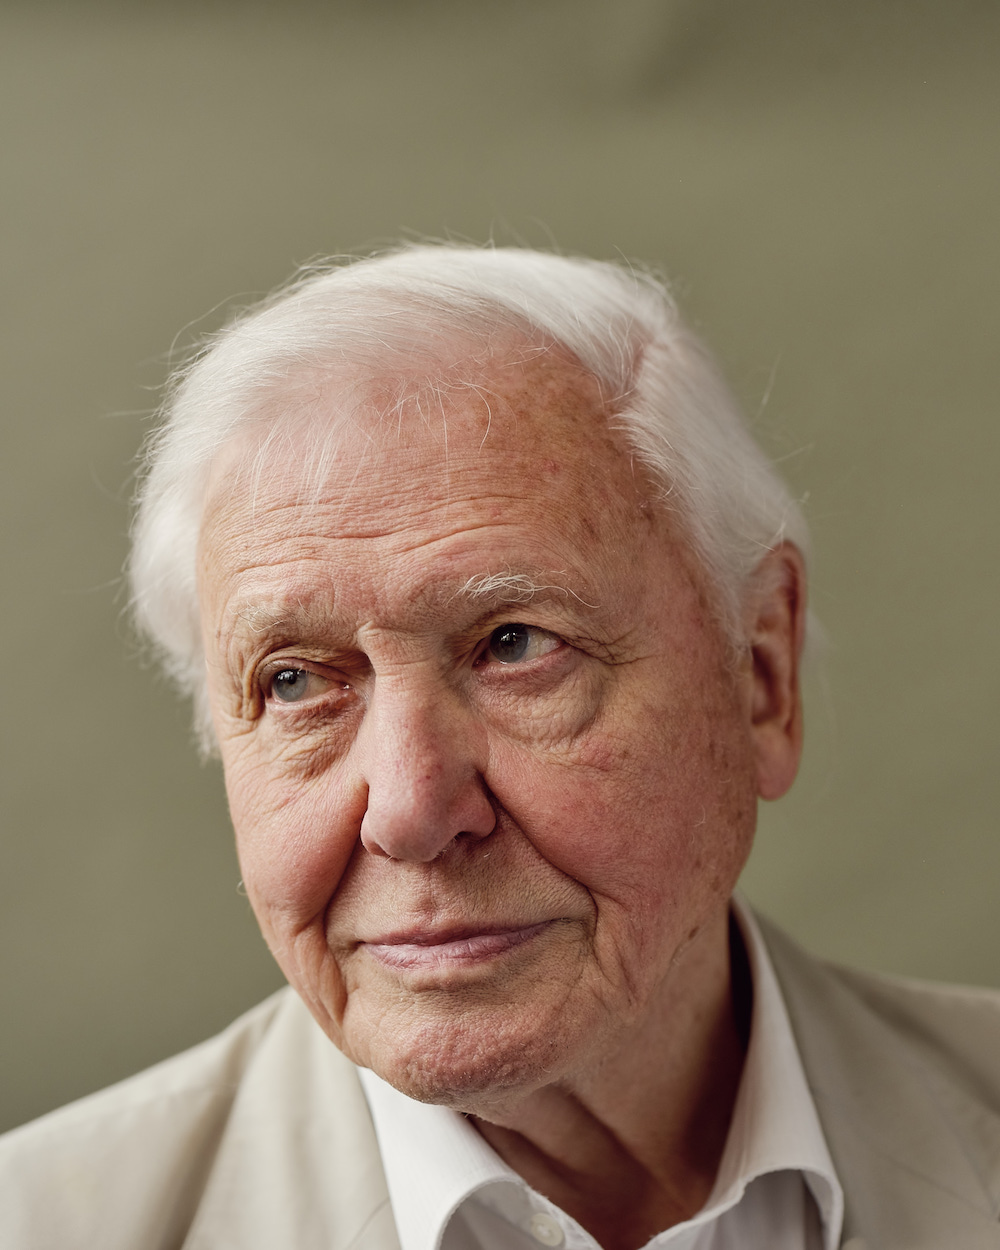 David_Attenborough_0089.jpg